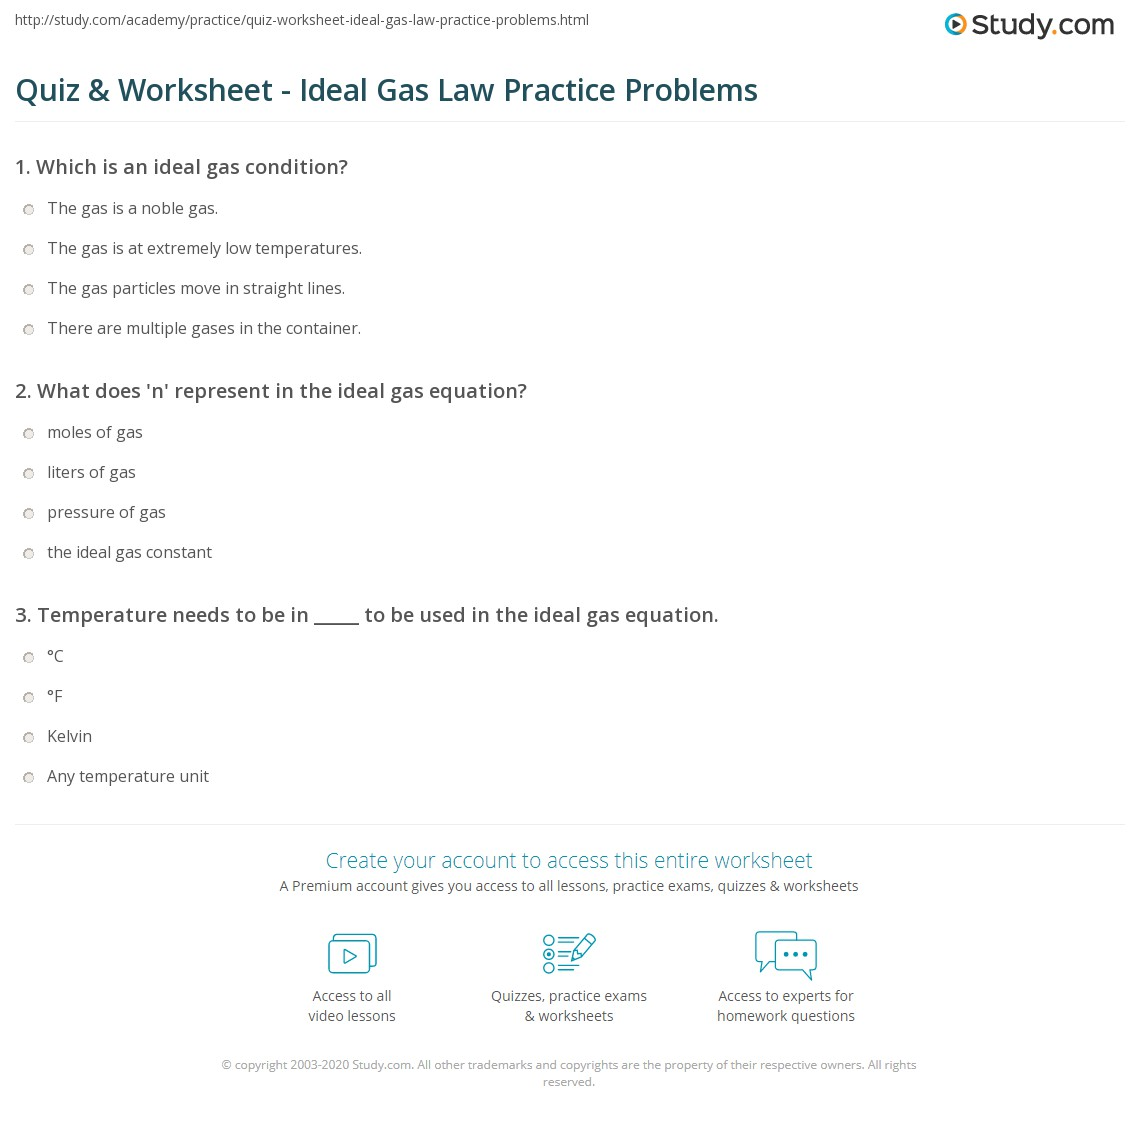 Quiz & Worksheet - Ideal Gas Law Practice Problems | Study.com